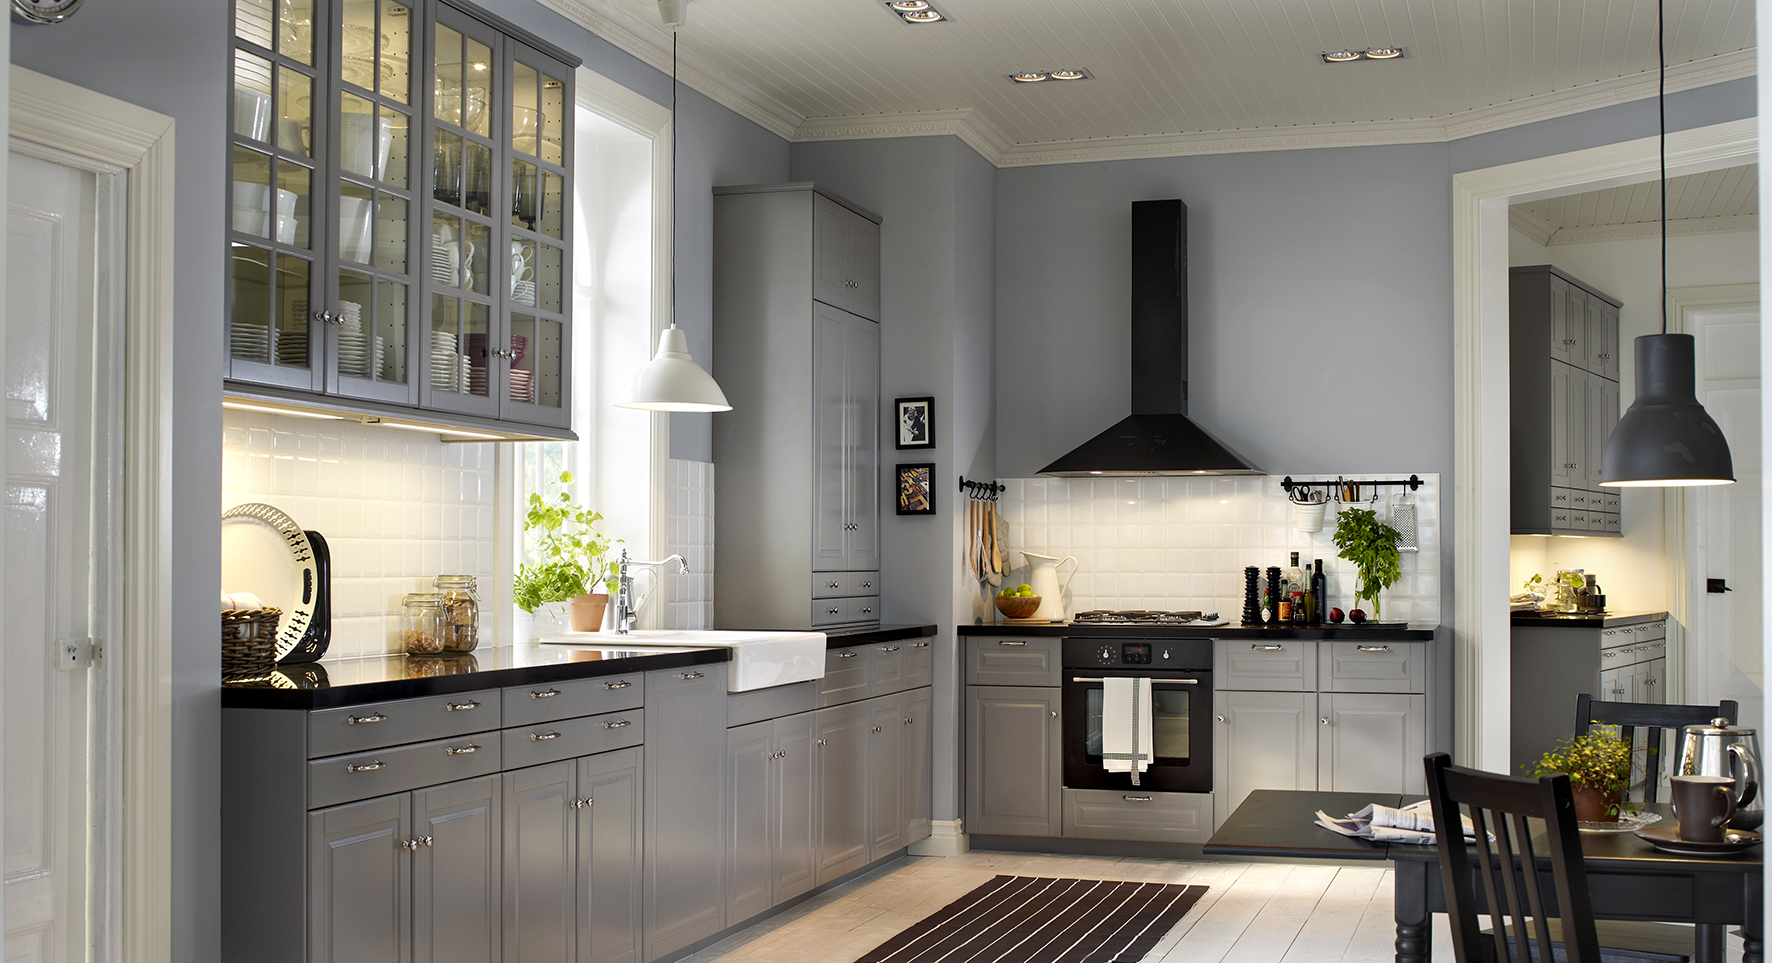 Wasbak Keuken Installeren : IKEA Grey Kitchen Cabinets